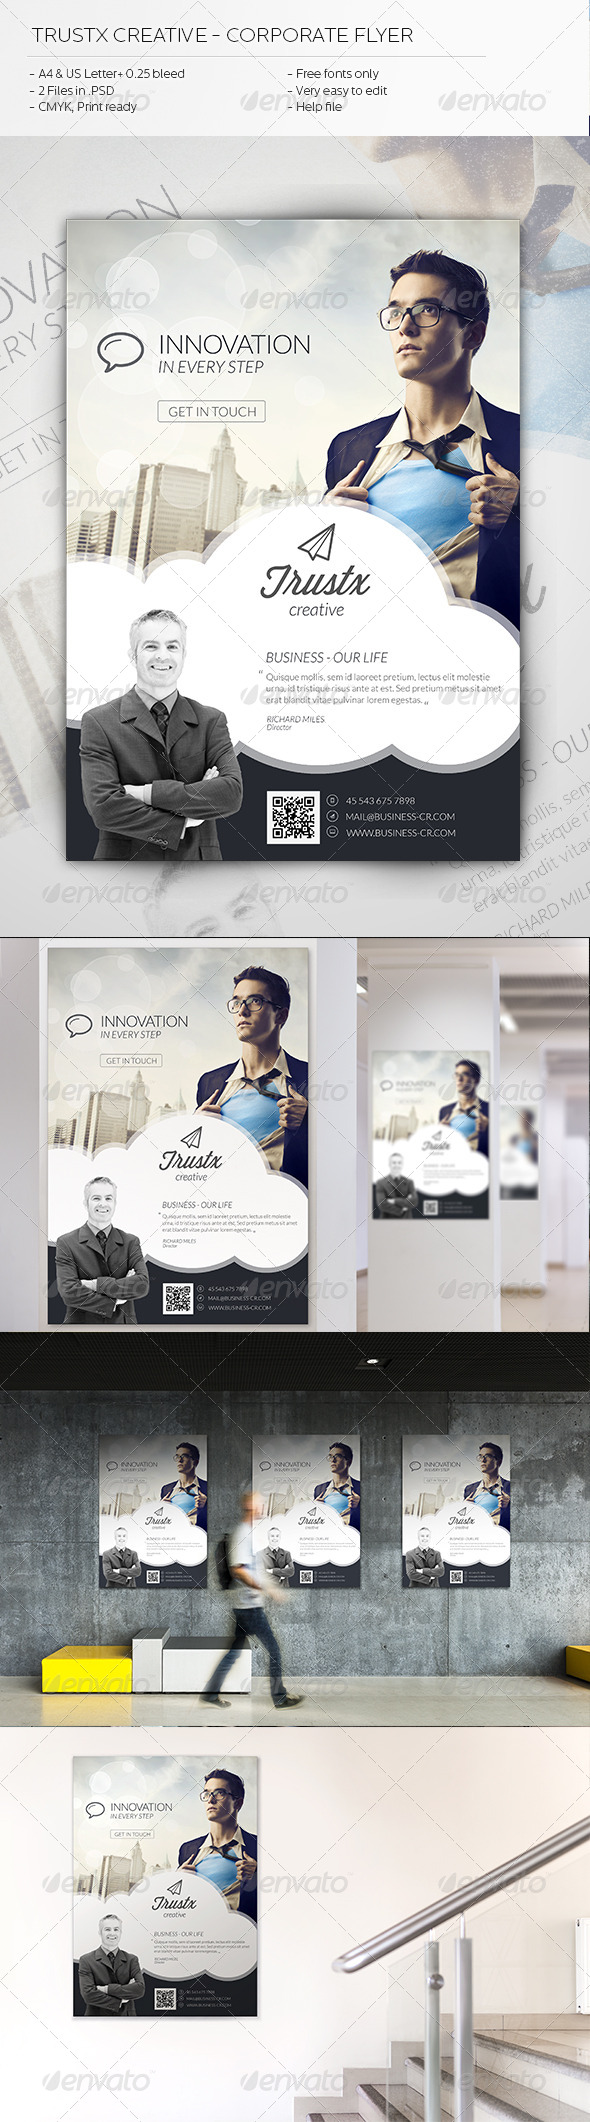 Trustx Creative - Corporate Flyer - Corporate Flyers